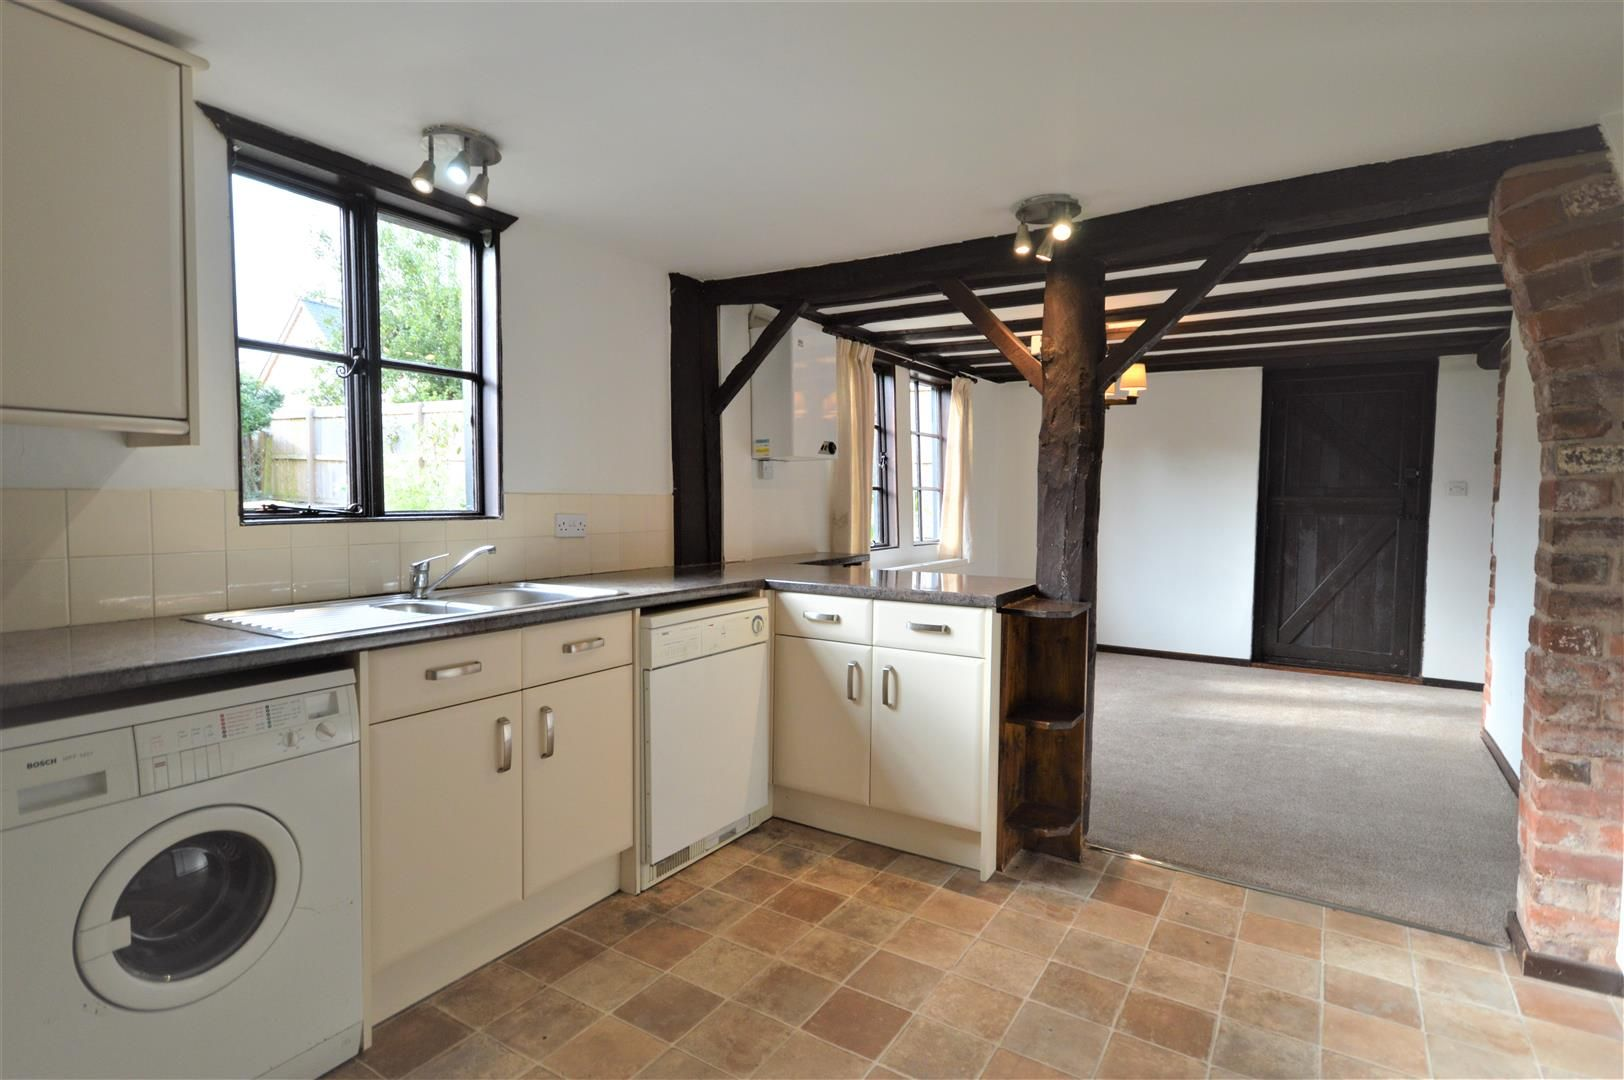 3 bed end of terrace for sale in Luston 4